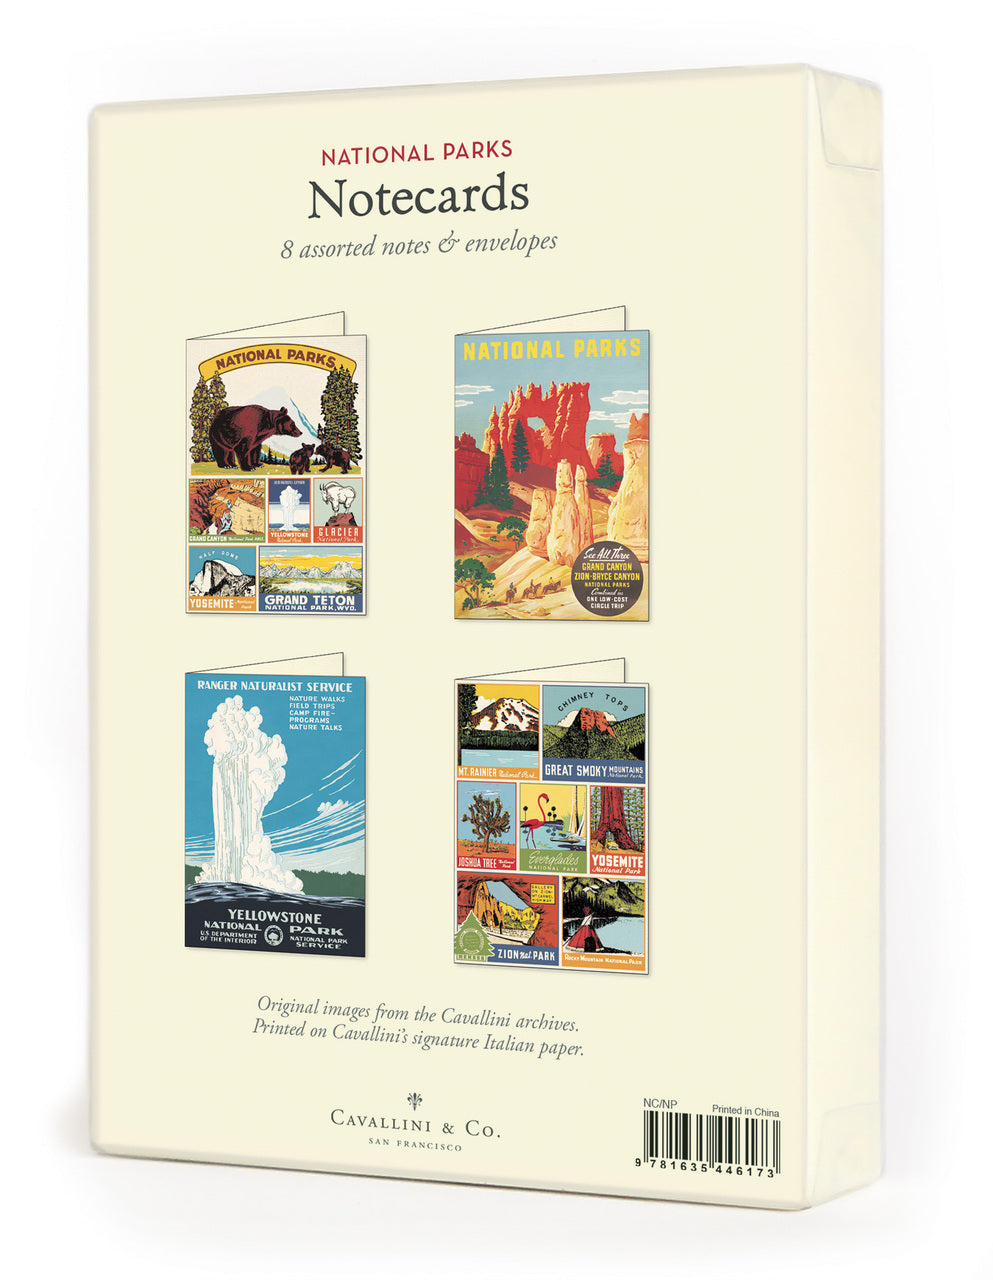 Cavallini & Co. Boxed Notecards includes 8 cards, 2 each of 4 designs.